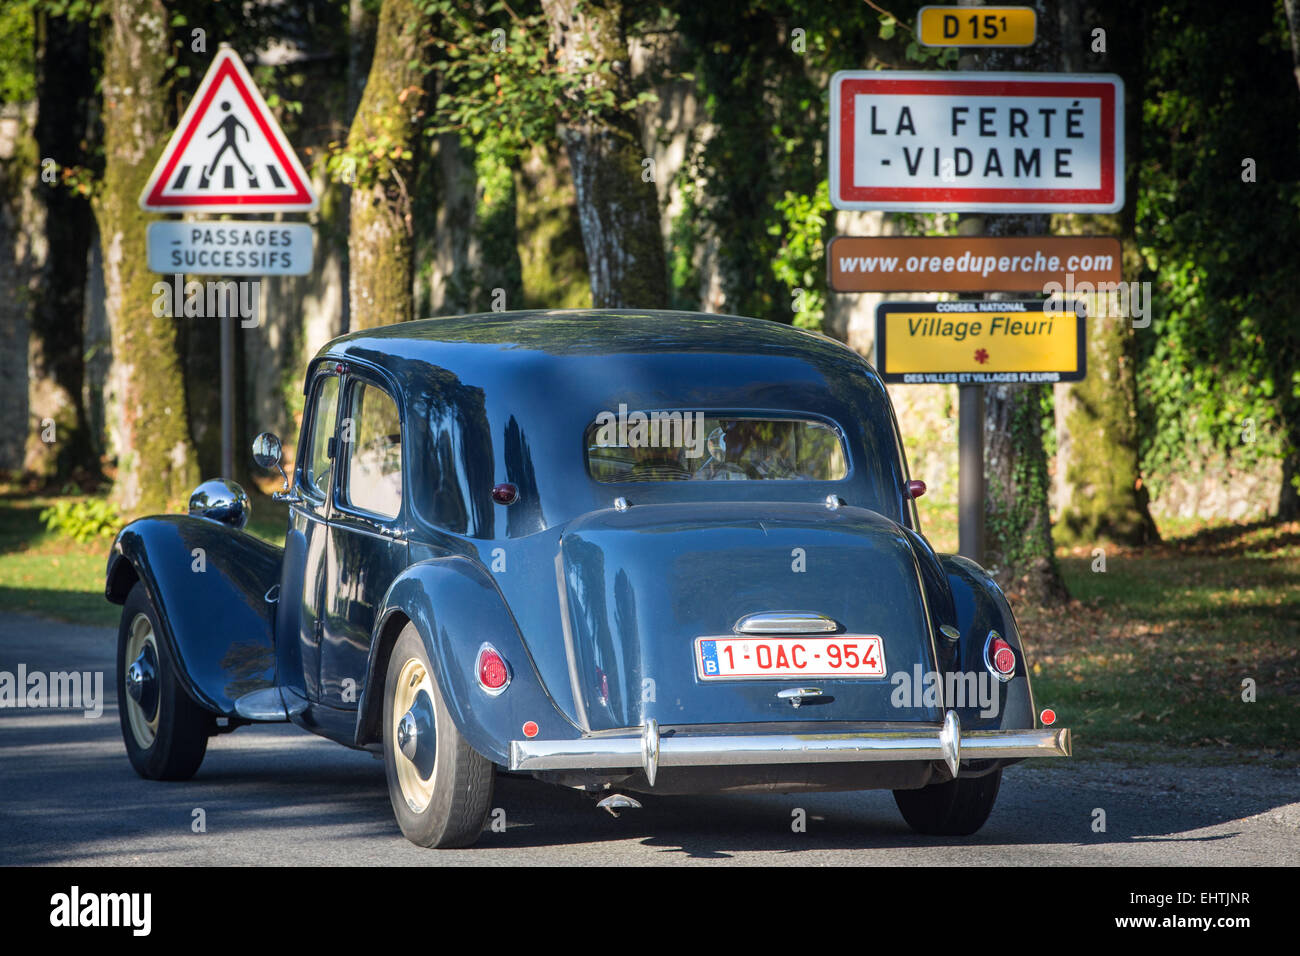 80 YEARS OF CITROEN'S FRONT-WHEEL DRIVE 'TRACTION AVANT', FRANCE - Stock Image